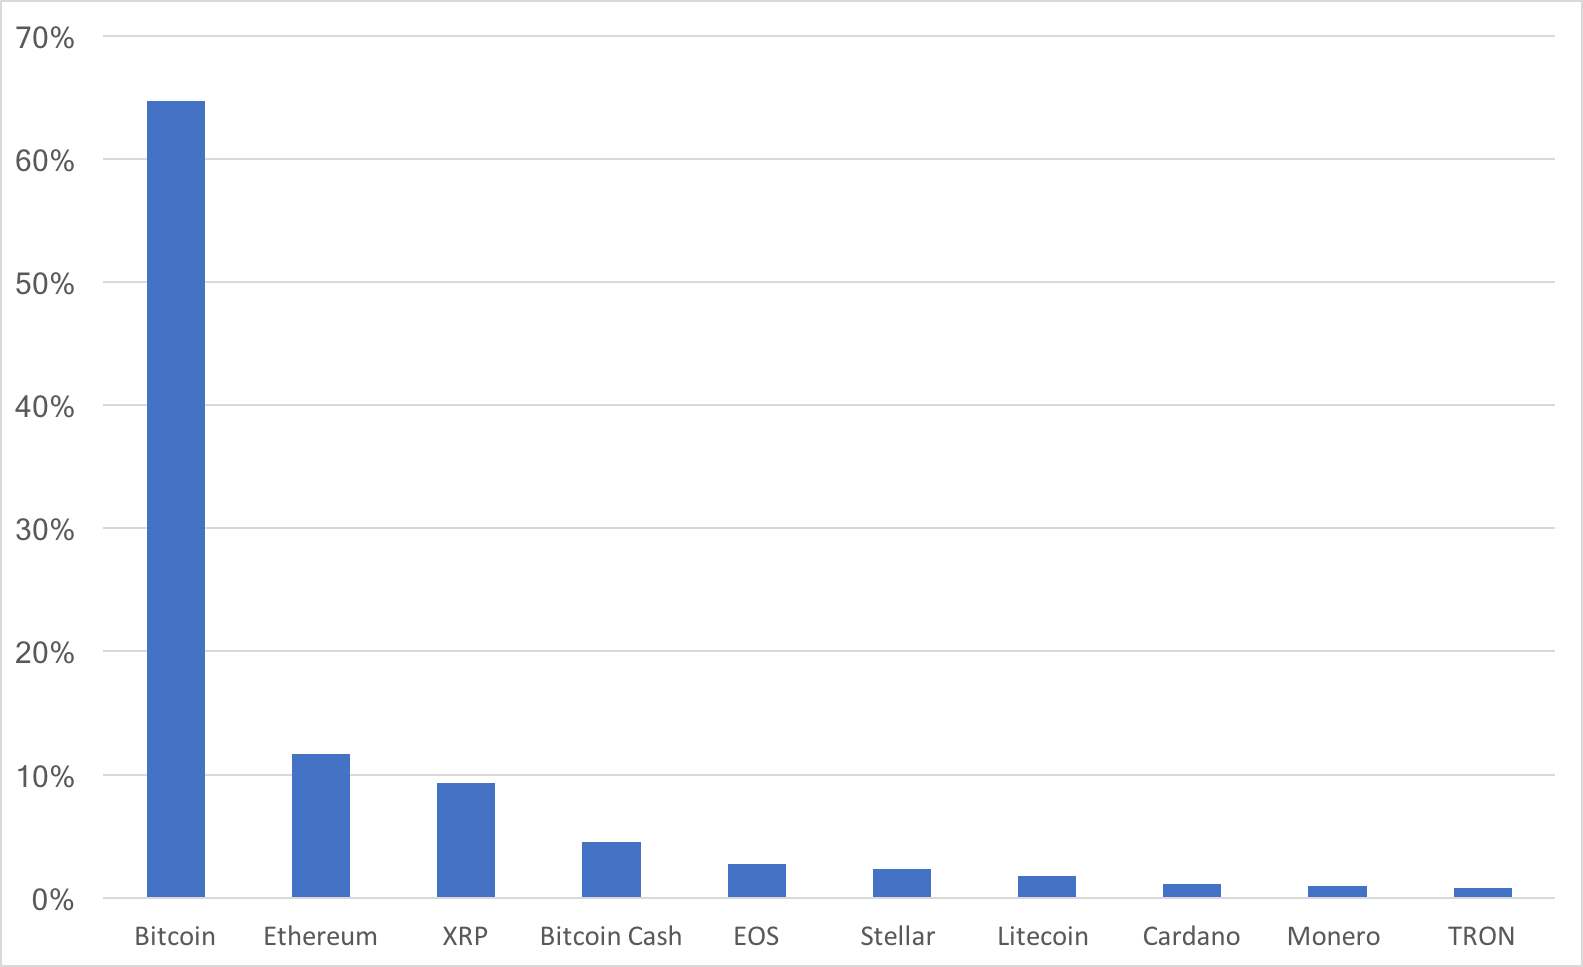 This is an index of the top ten cryptocurrencies, weighted by market cap. USDT was excluded because it is tethered to a fiat currency.